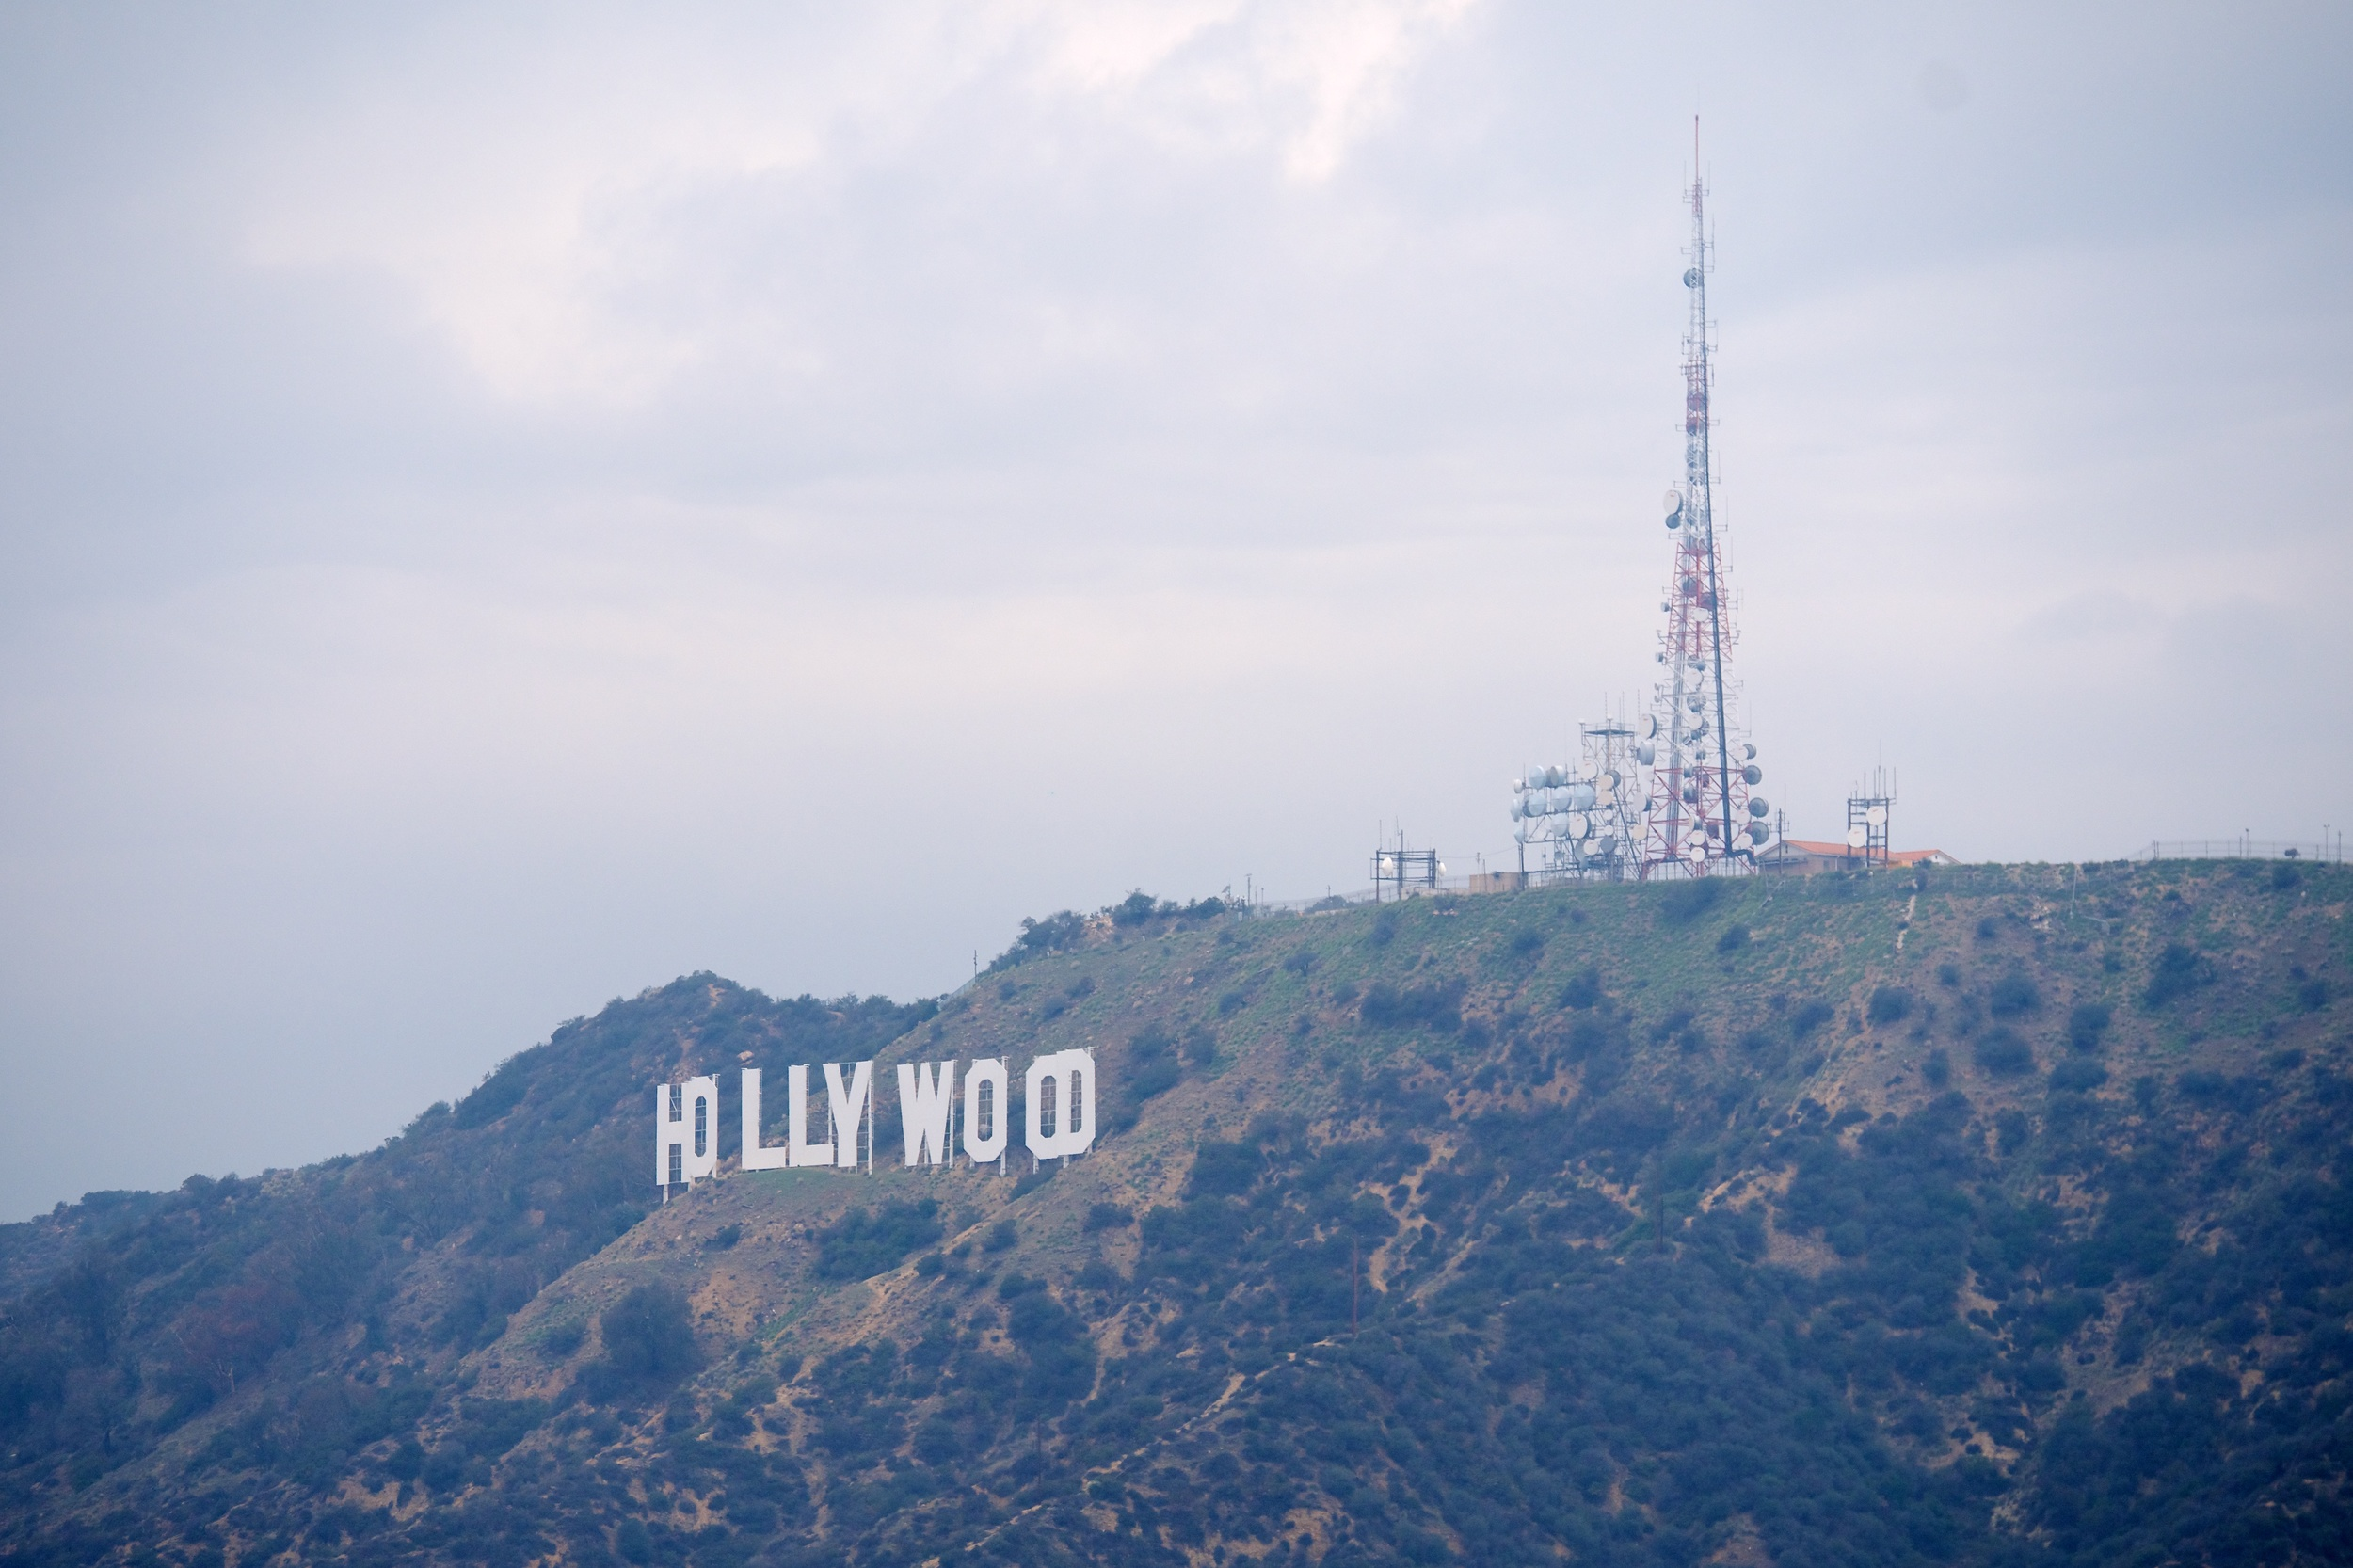 This was about as close as we could get to the Hollywood sign